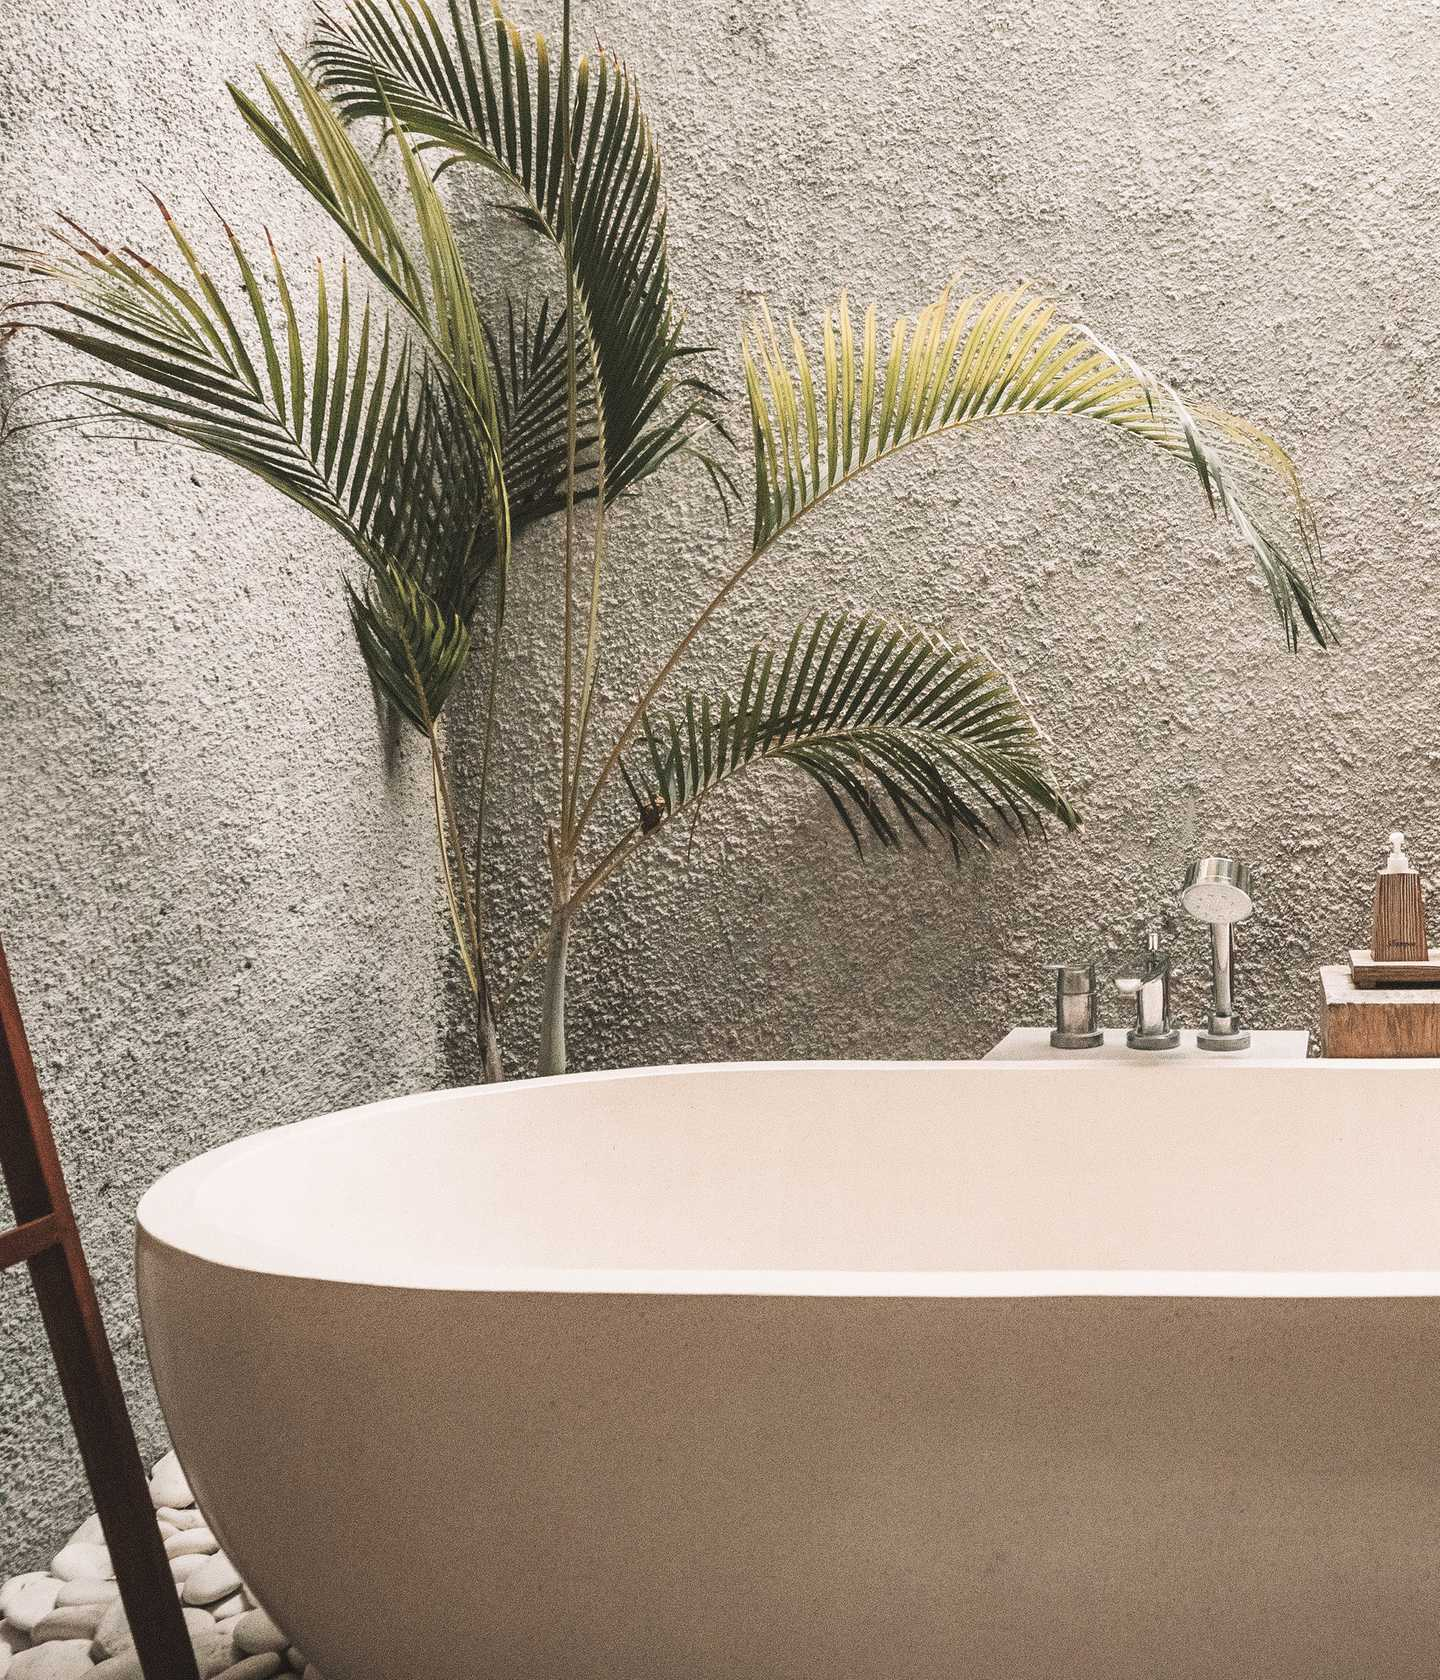 Deep ceramic soaking tub in a modern environment